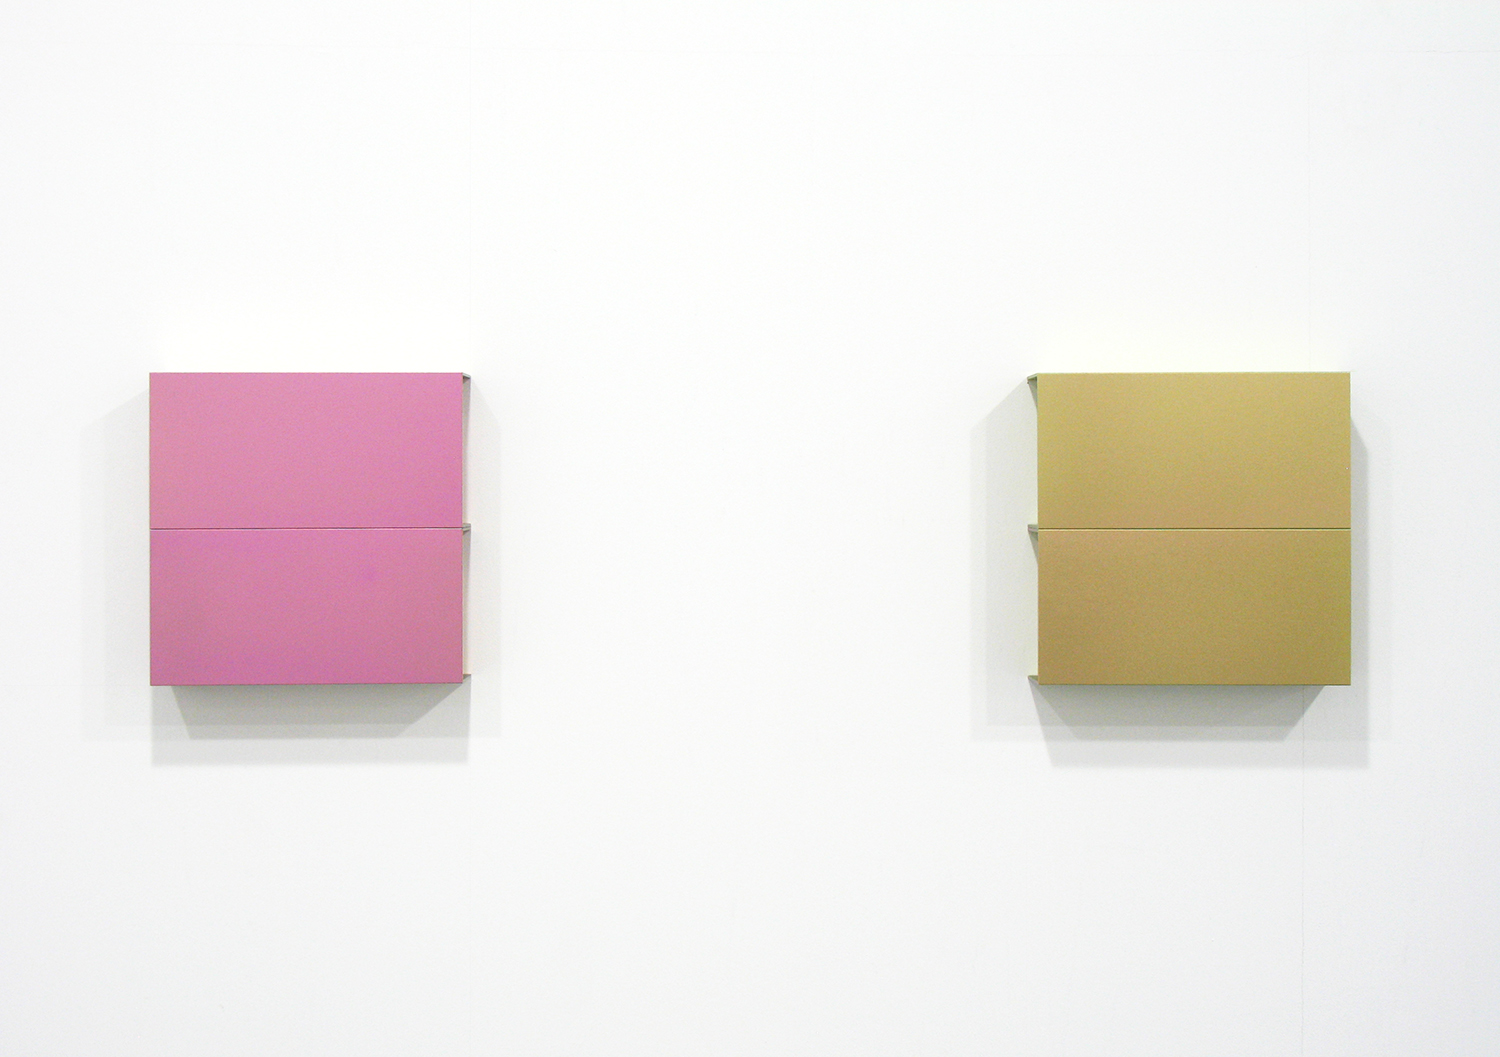 桑山忠明 Tadaaki Kuwayama<br>Titanium - pink & pale pink<br>a set of 8 pieces 20 x 20 x 5 cm each<br>2013